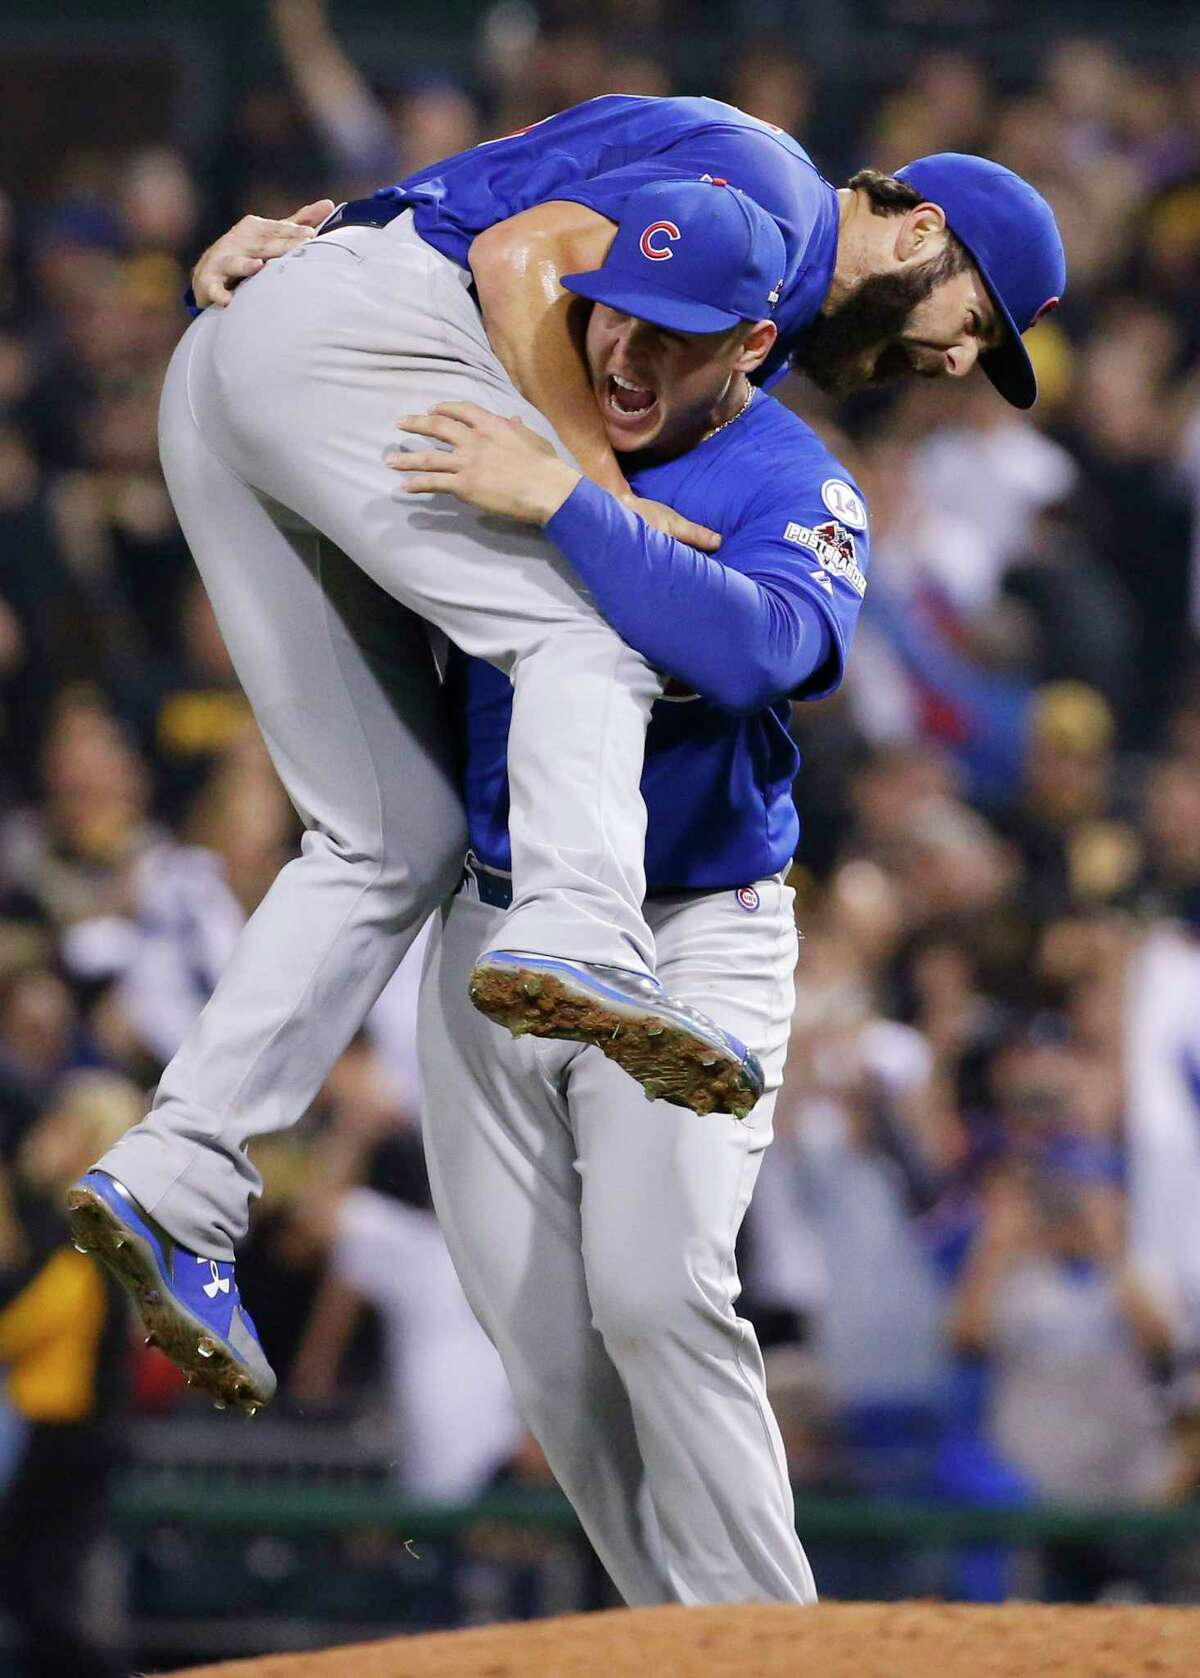 Chicago Cubs first baseman Anthony Rizzo holds starter Jake Arrieta after they defeated the Pirates in the National League wild-card game 4-0 Wednesday in Pittsburgh. The Cubs advance to play the St. Louis Cardinals in the NLDS.